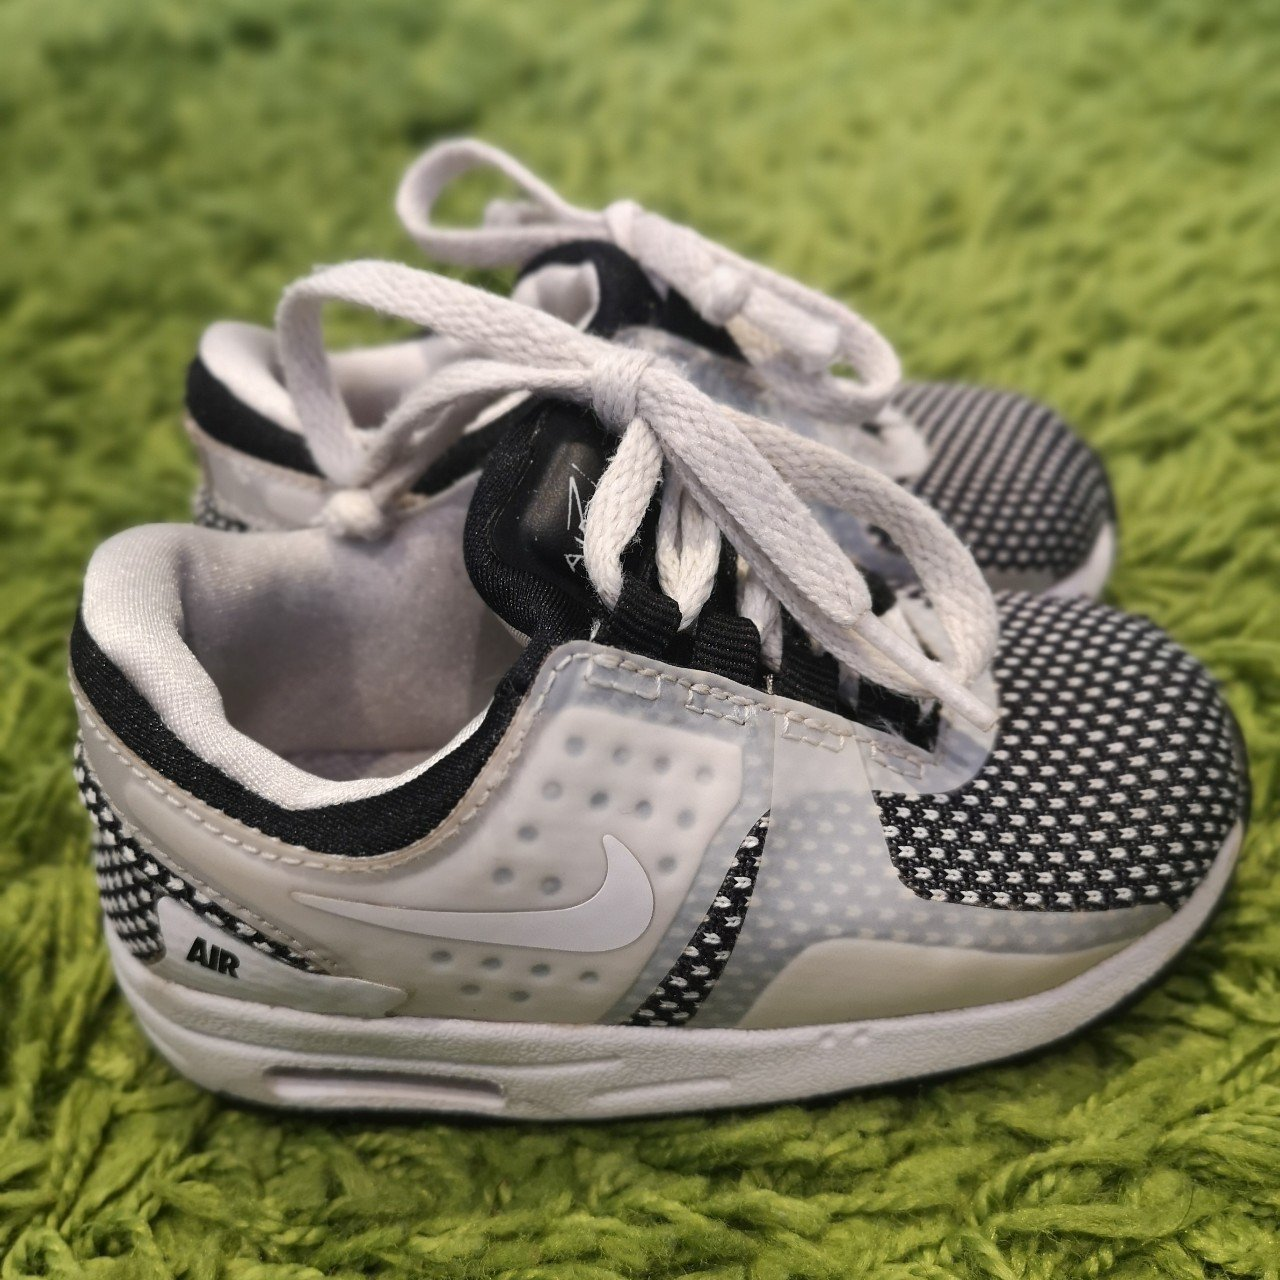 Nike Infant Trainers UK 5.5 Great